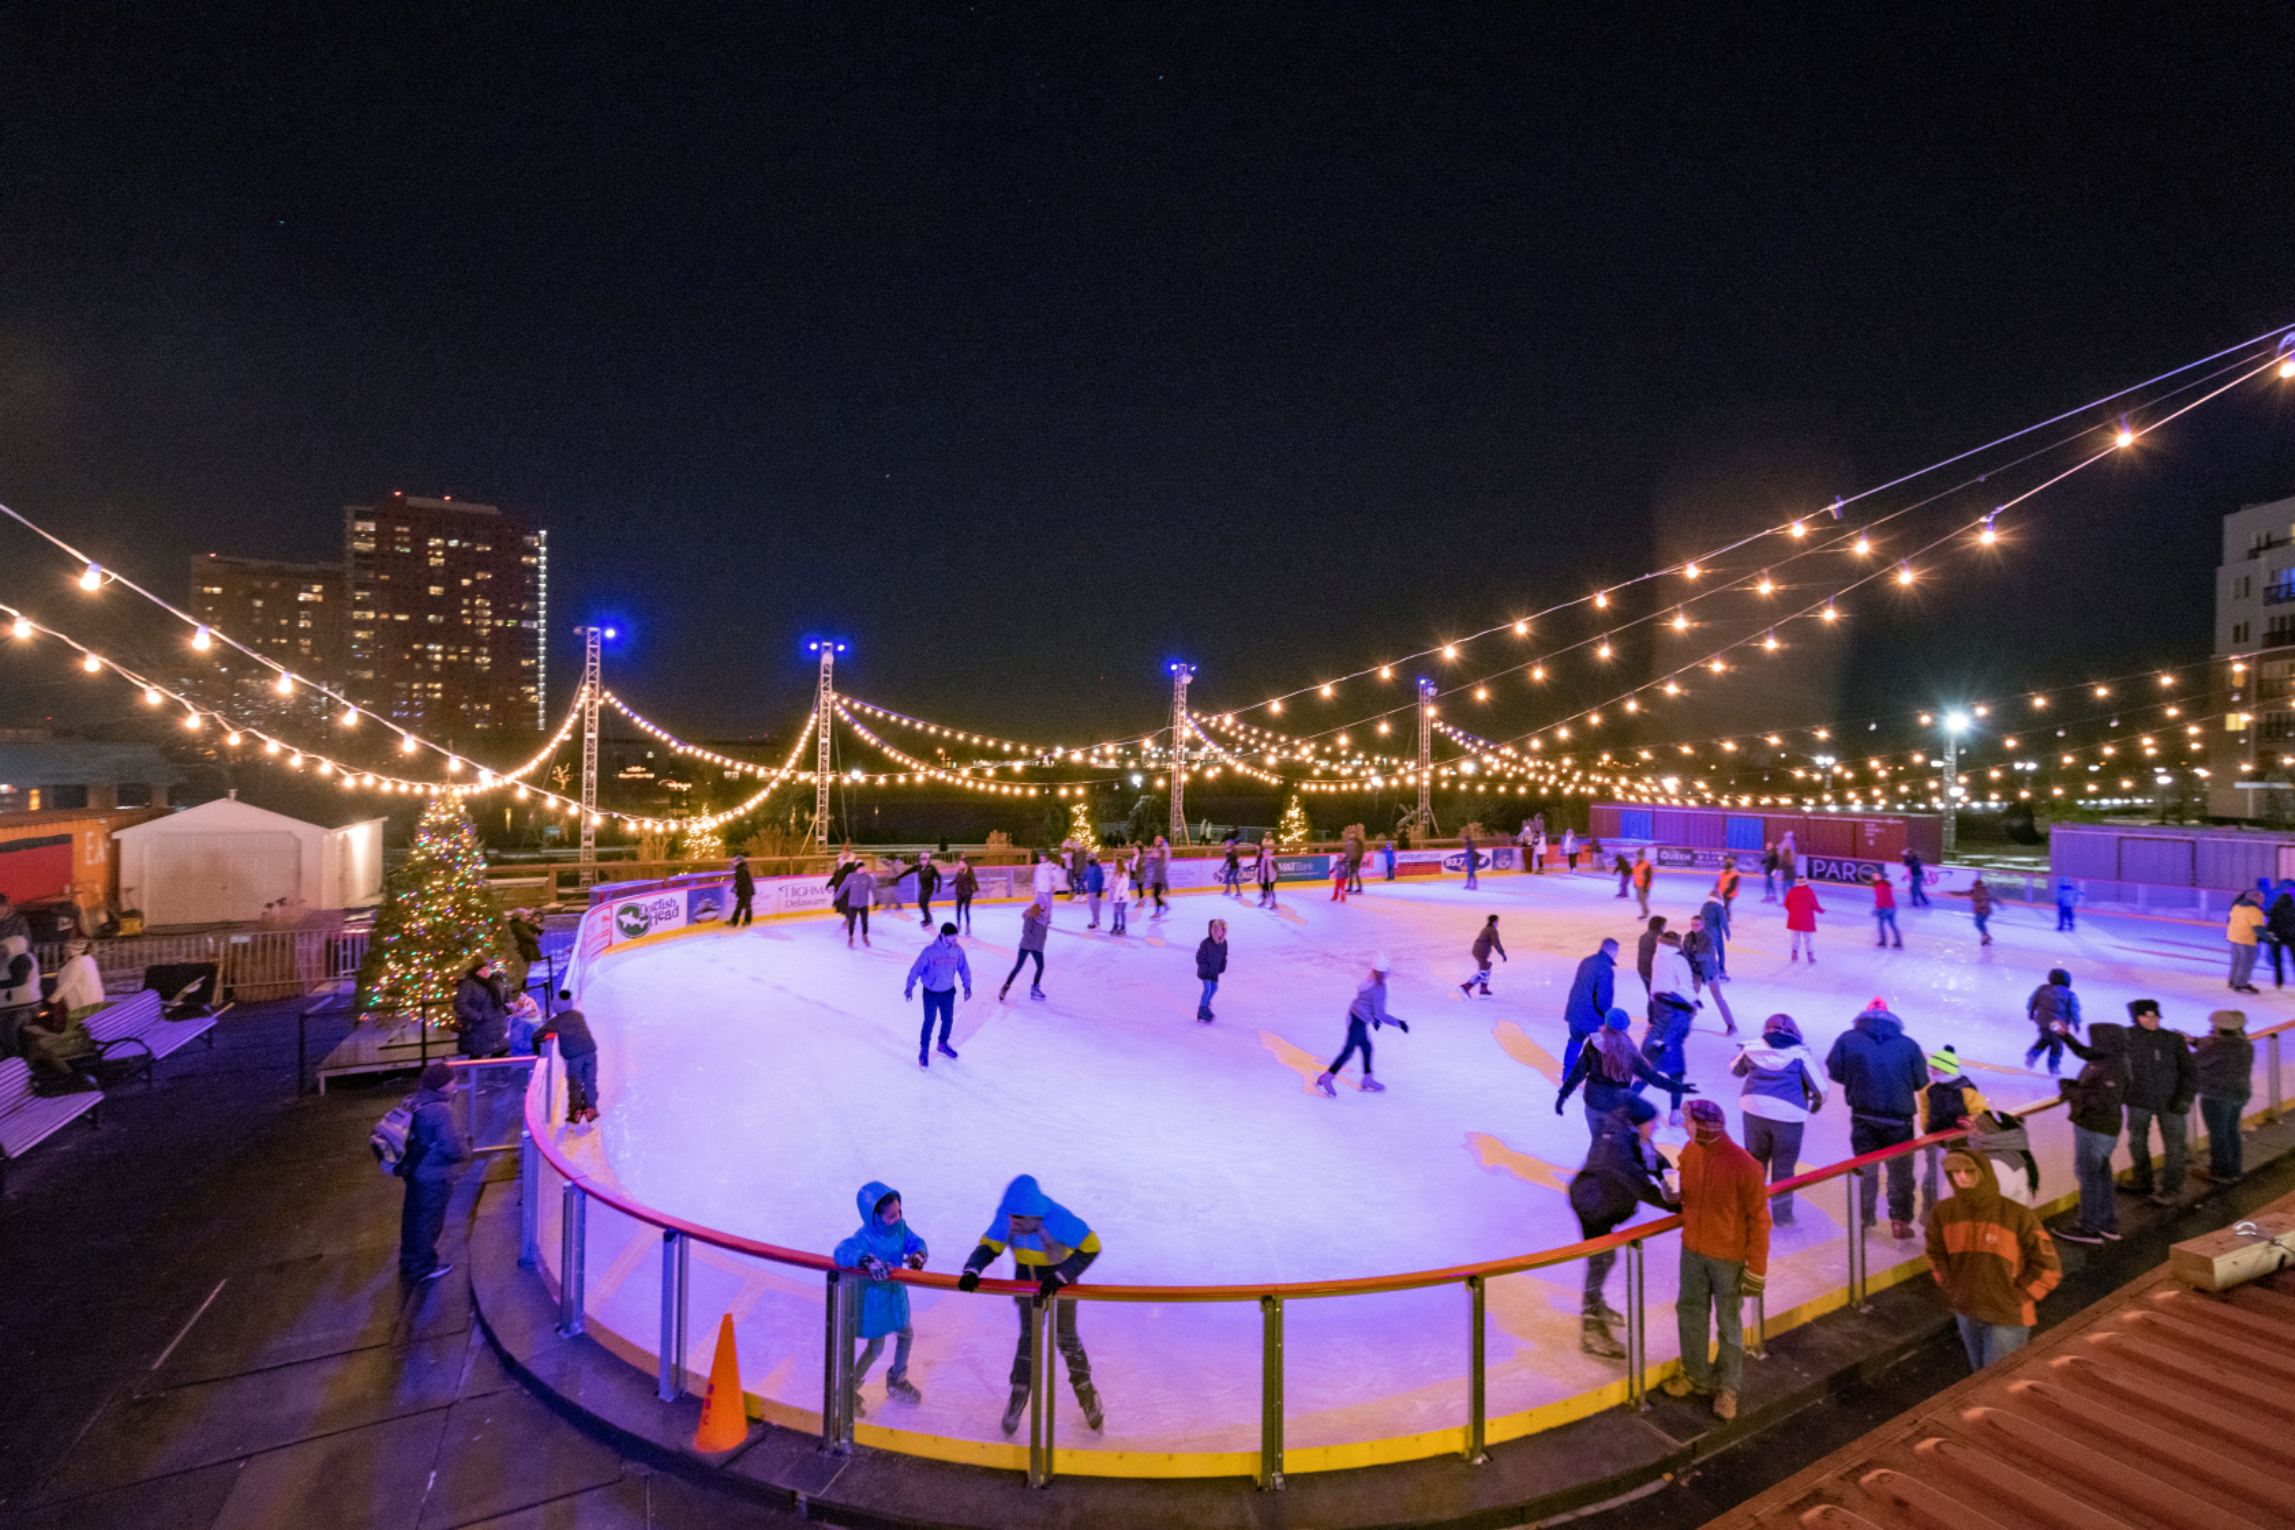 Horizon Service Riverfront Rink NOW OPEN through March 3rd!